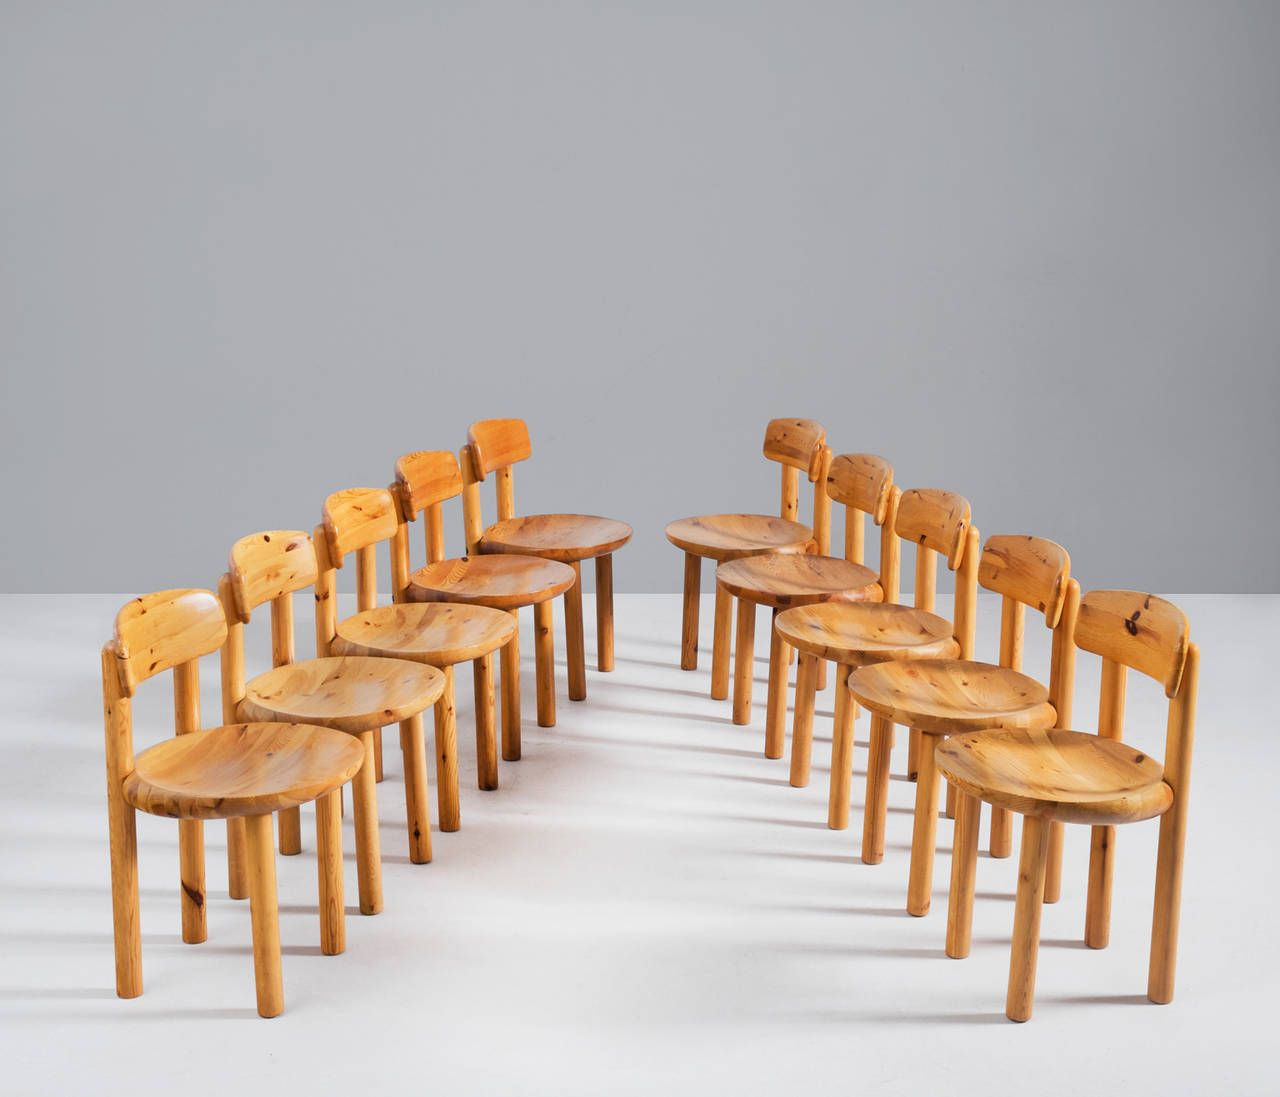 Set of 10 Dining Chairs in Solid Pine Wood | From a unique collection of antique and modern chairs at https://www.1stdibs.com/furniture/seating/chairs/